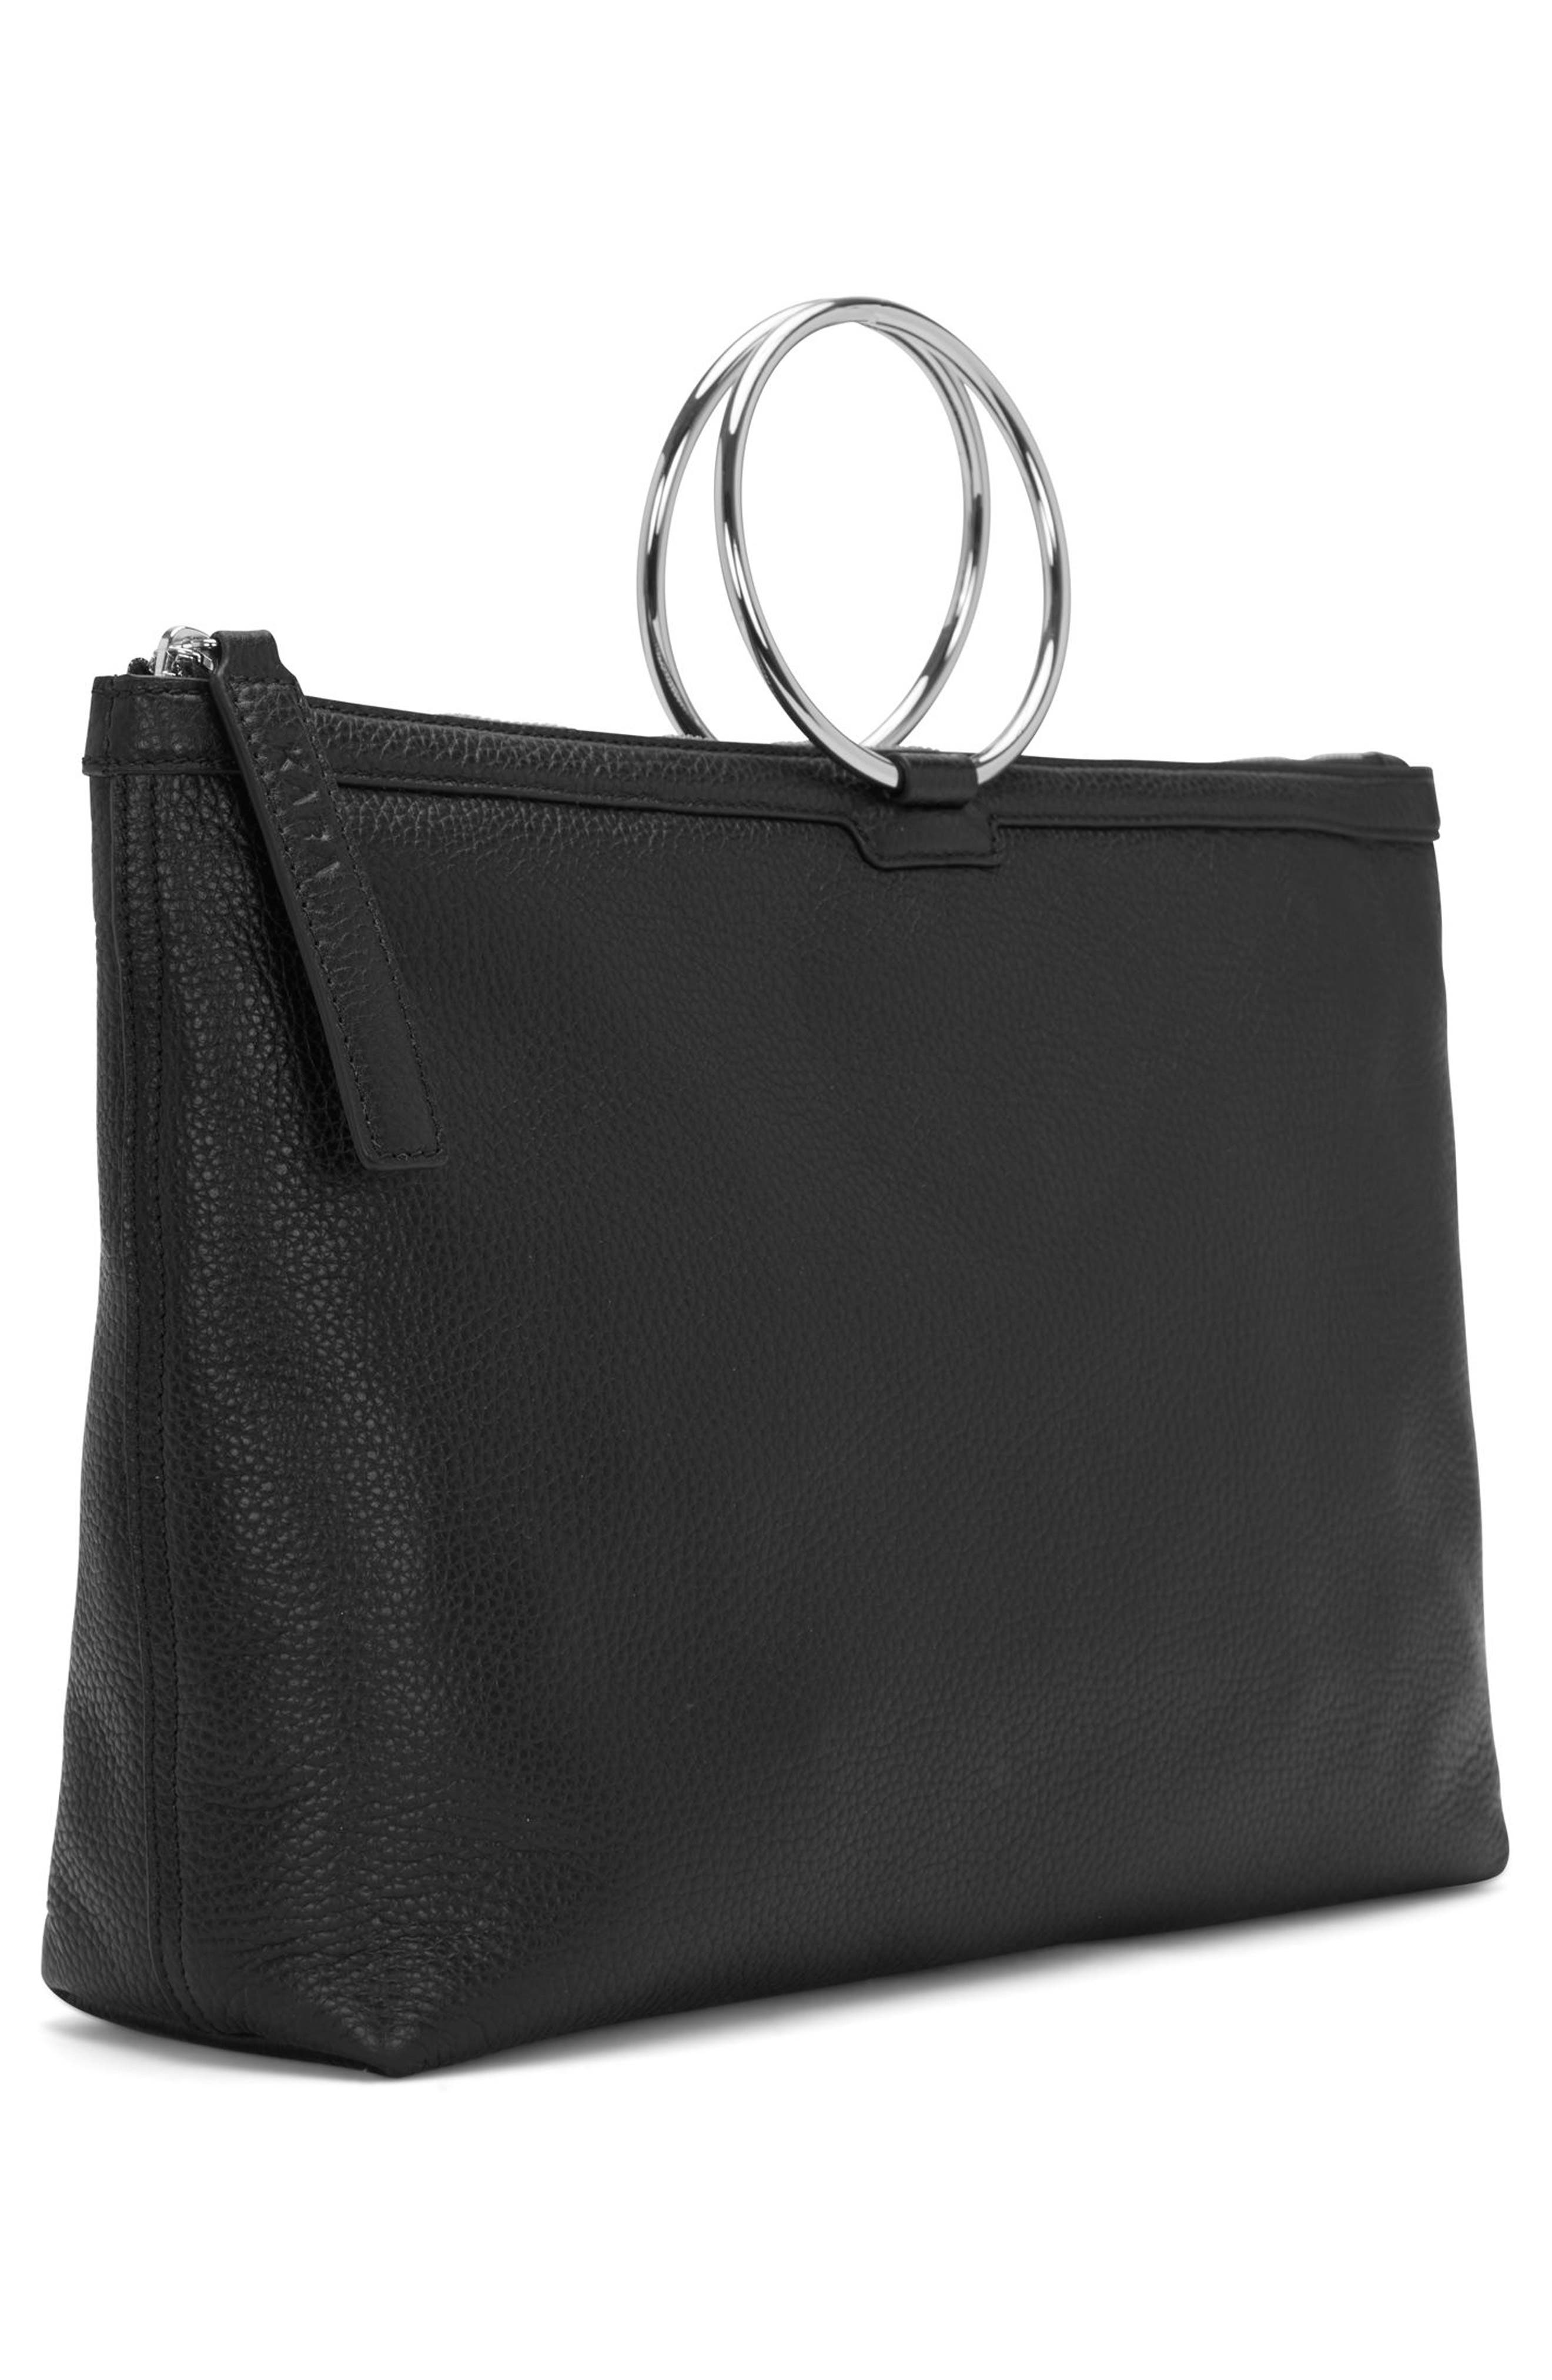 KARA, Large Pebbled Leather Ring Clutch, Alternate thumbnail 9, color, 001